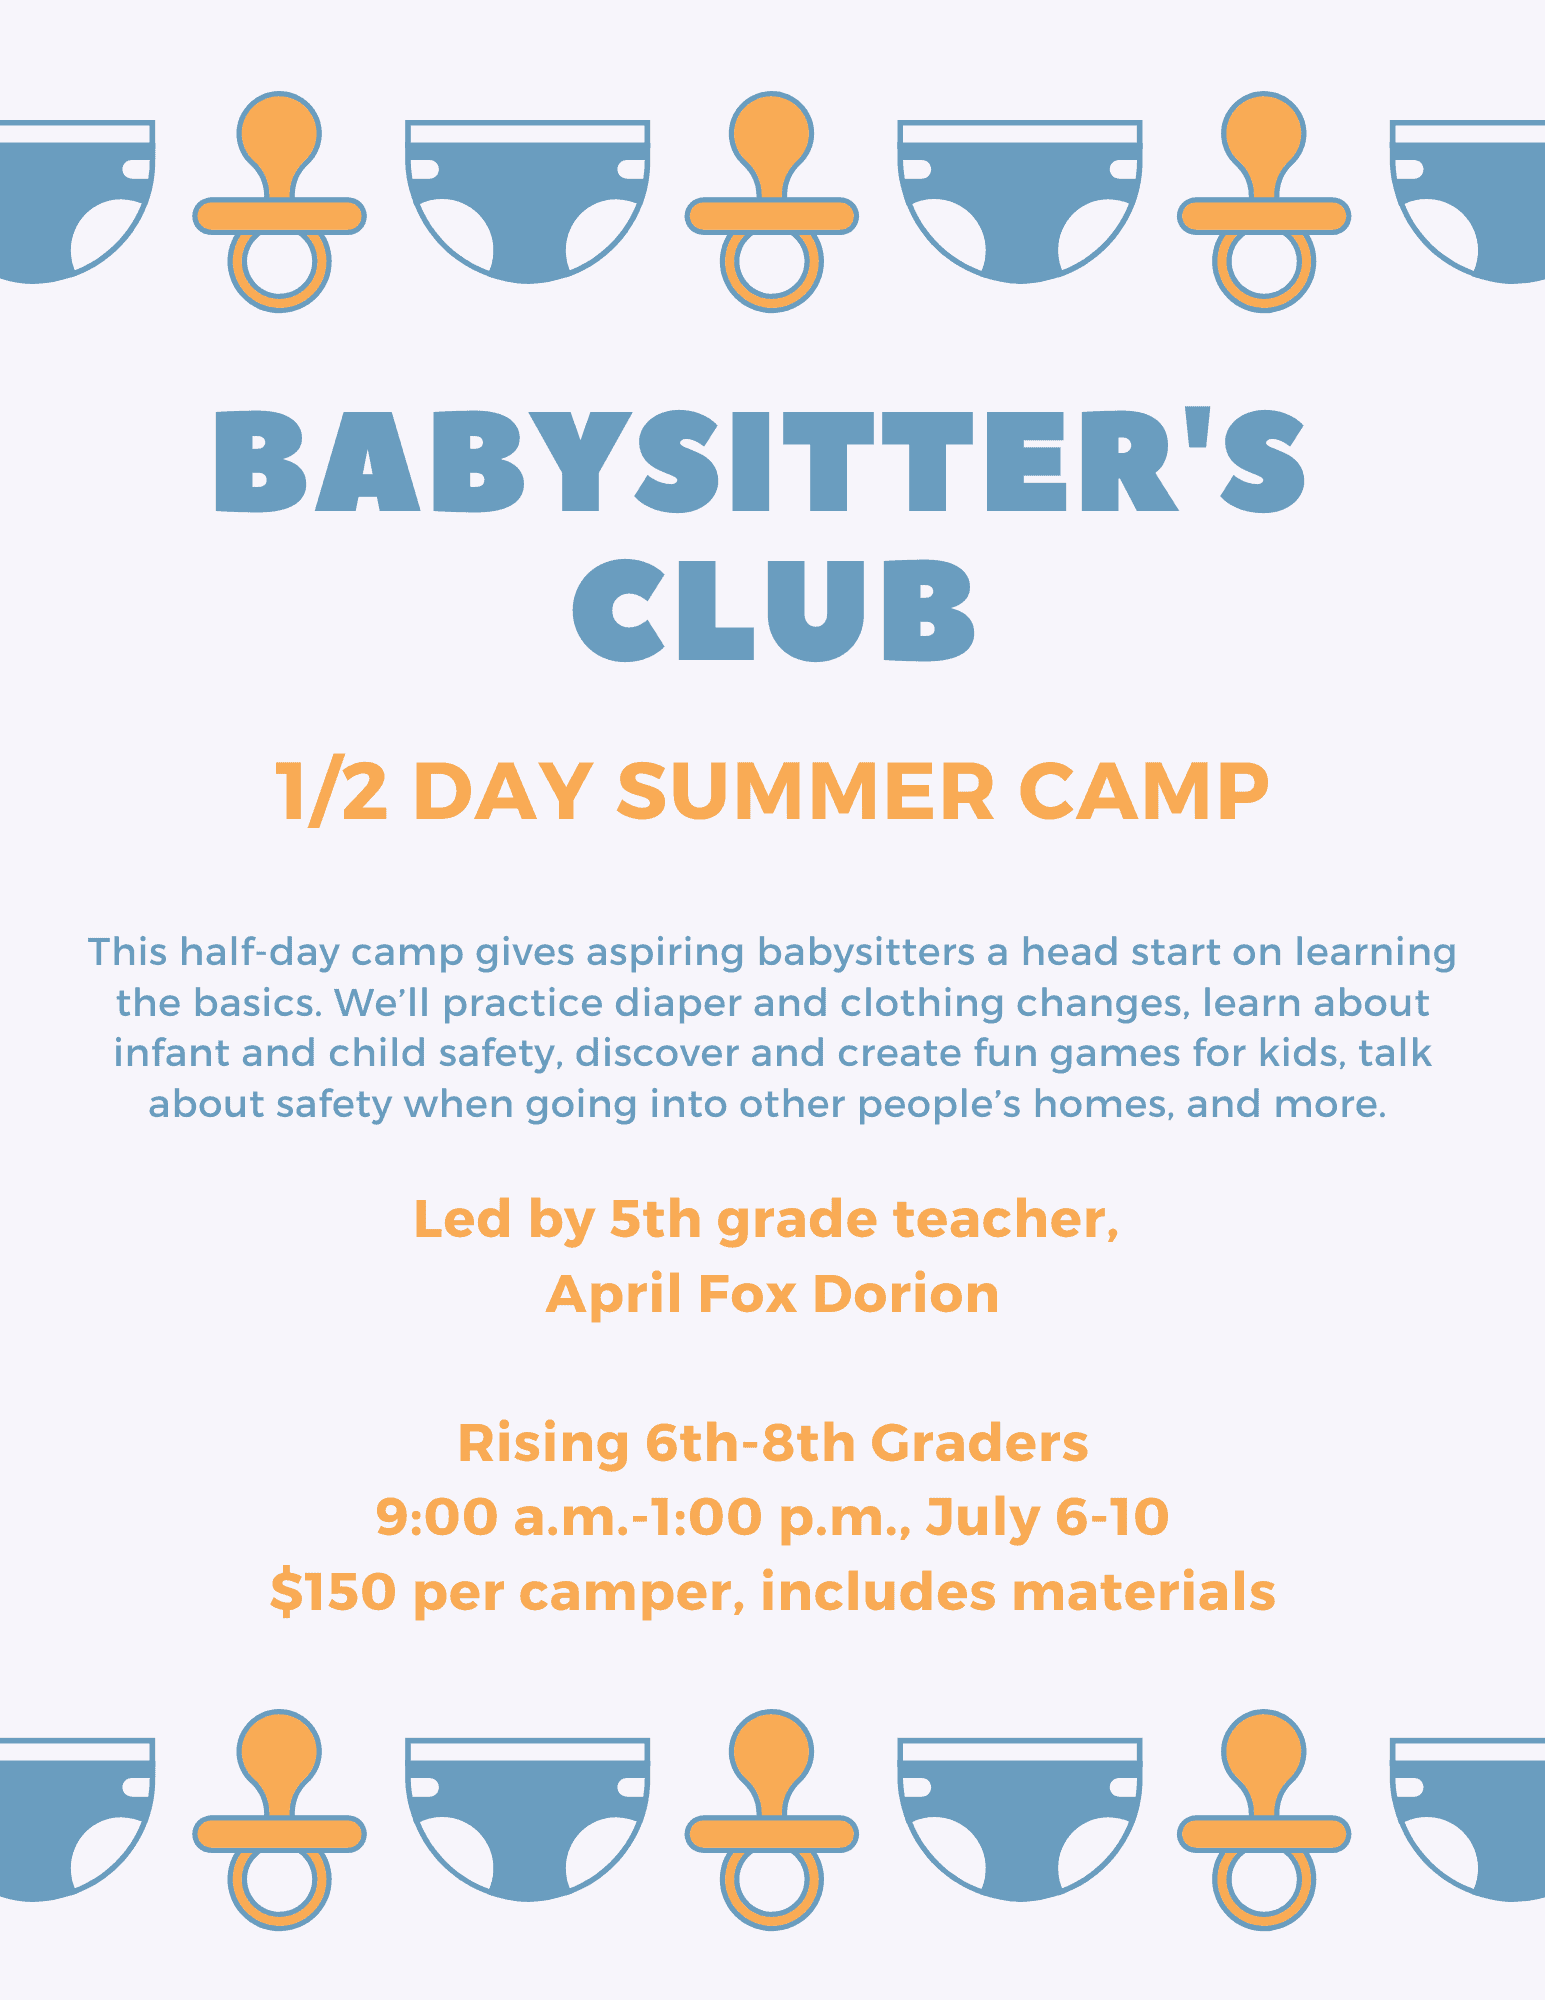 babysitter's club summer camp